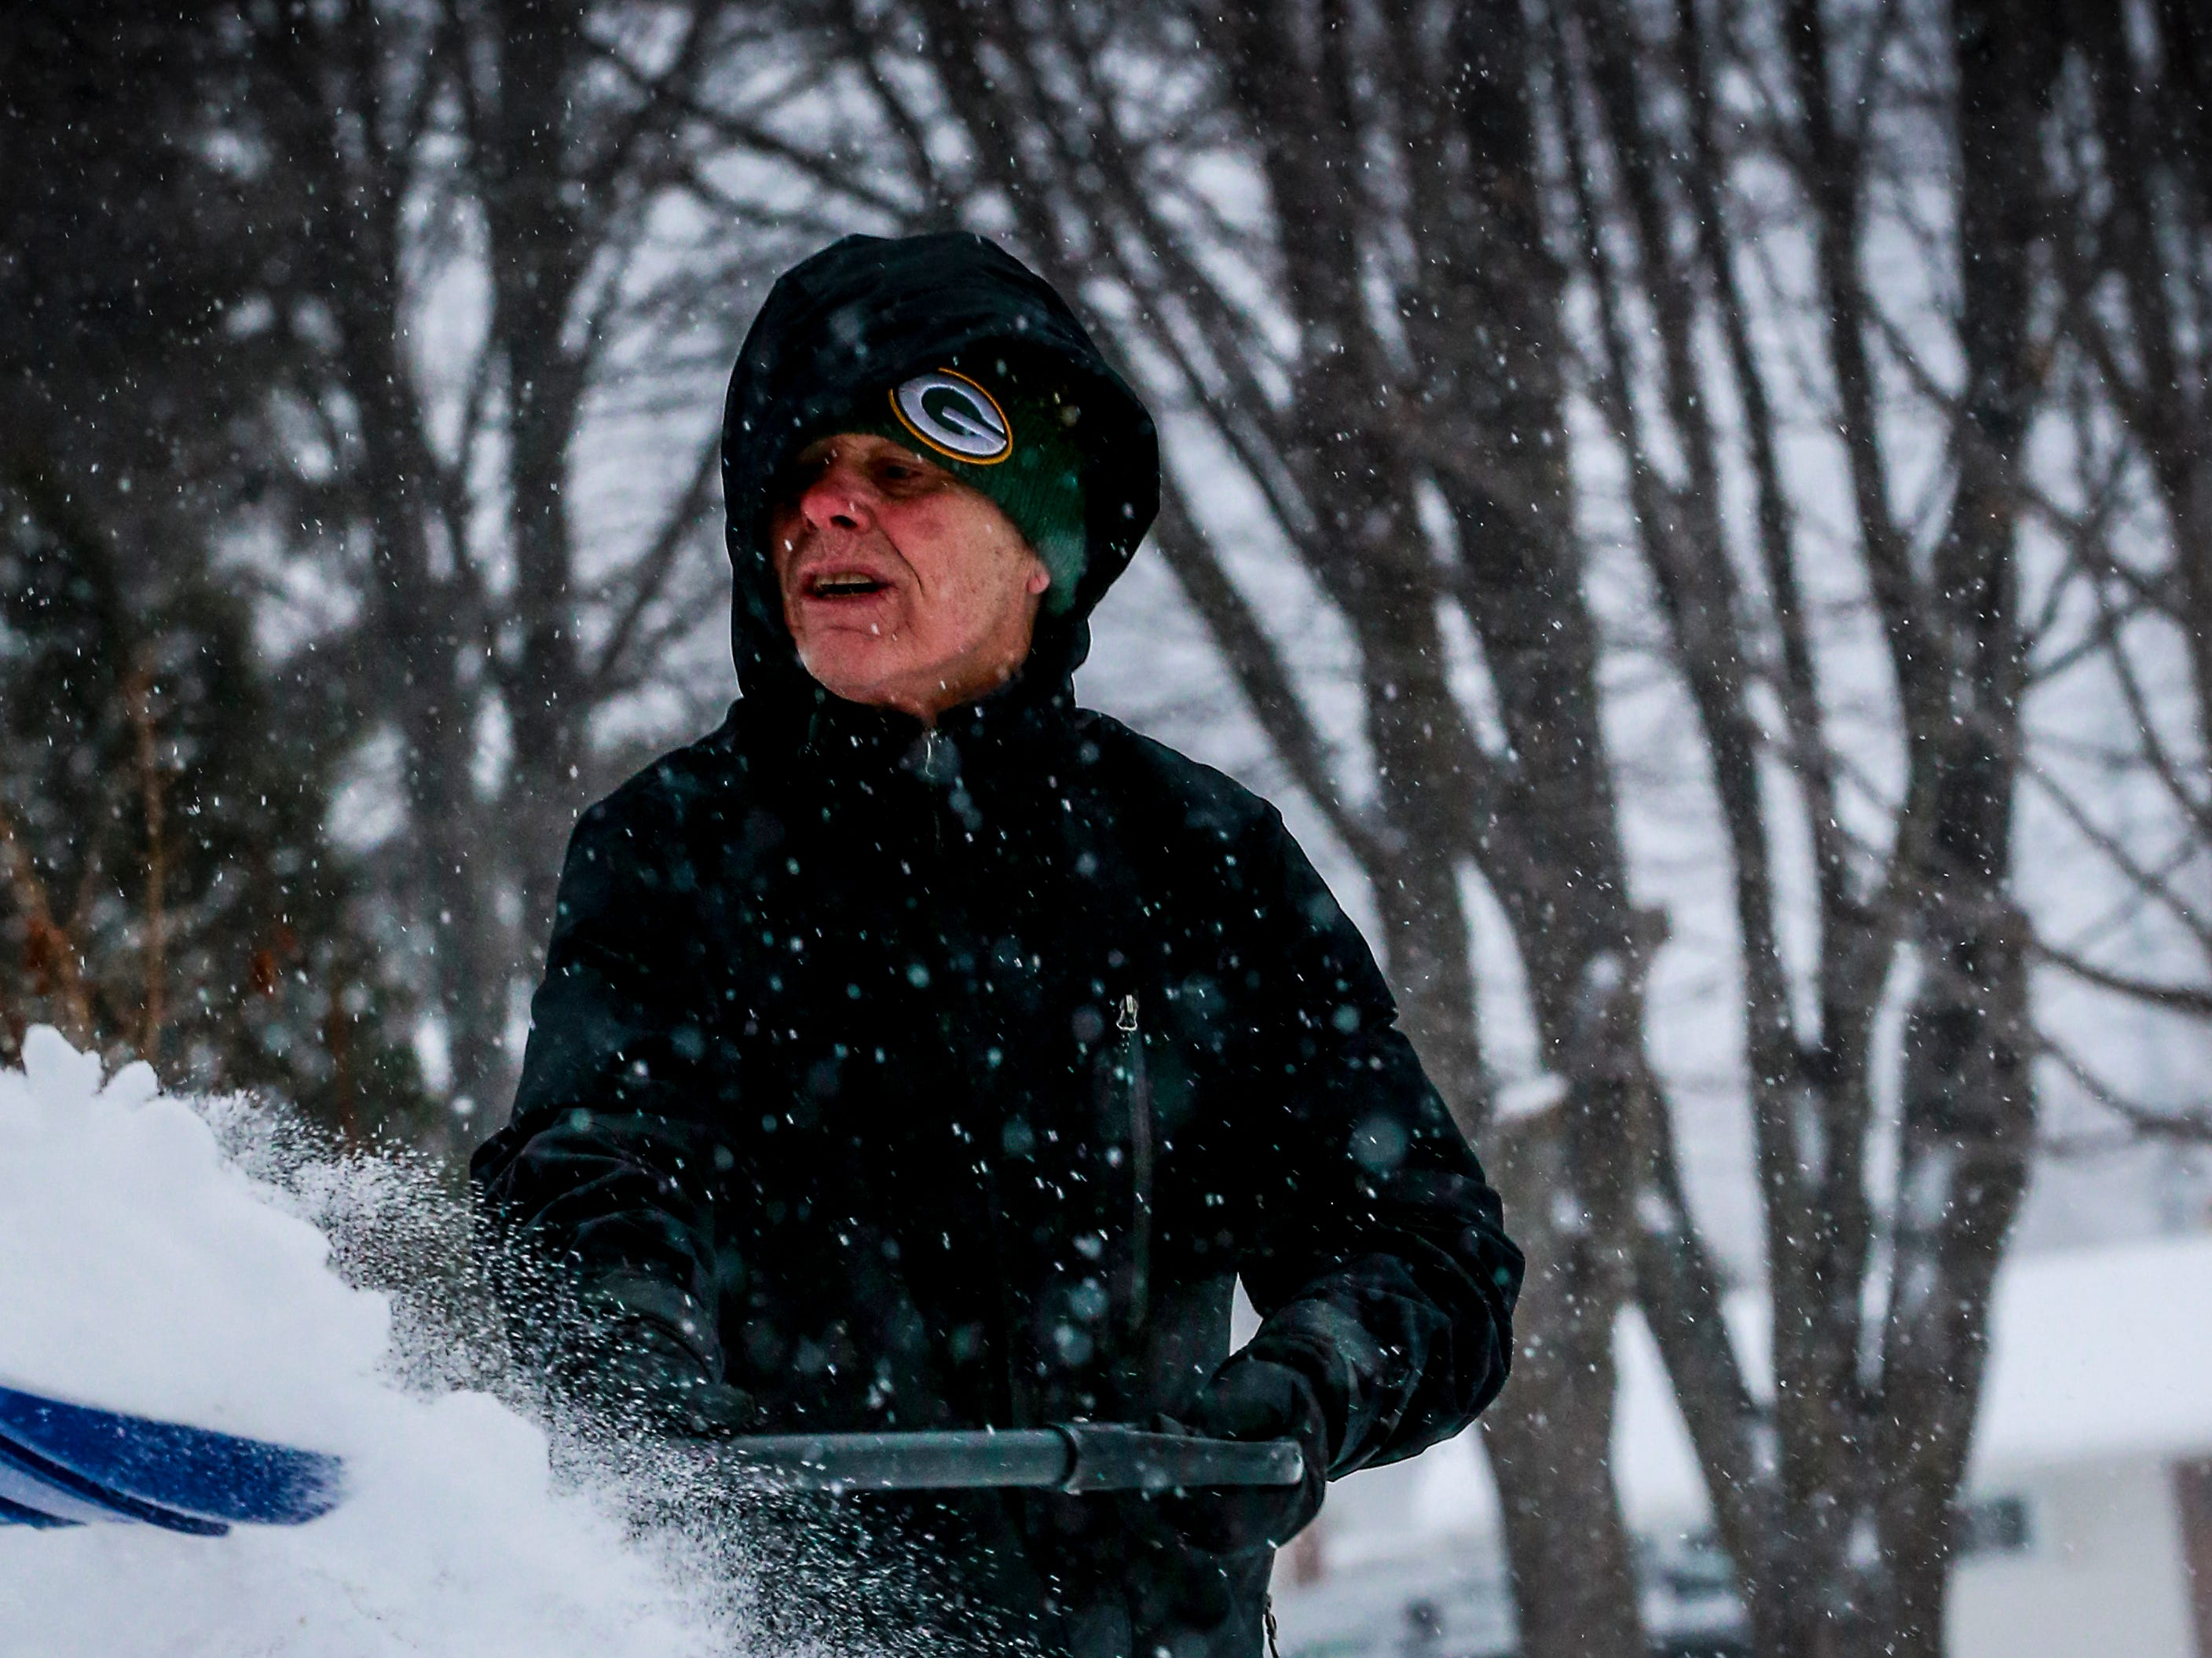 Jeff Martinson works to clear snow on his driveway after a snowstorm Monday, Jan. 28, 2019, in Wausau, Wis.